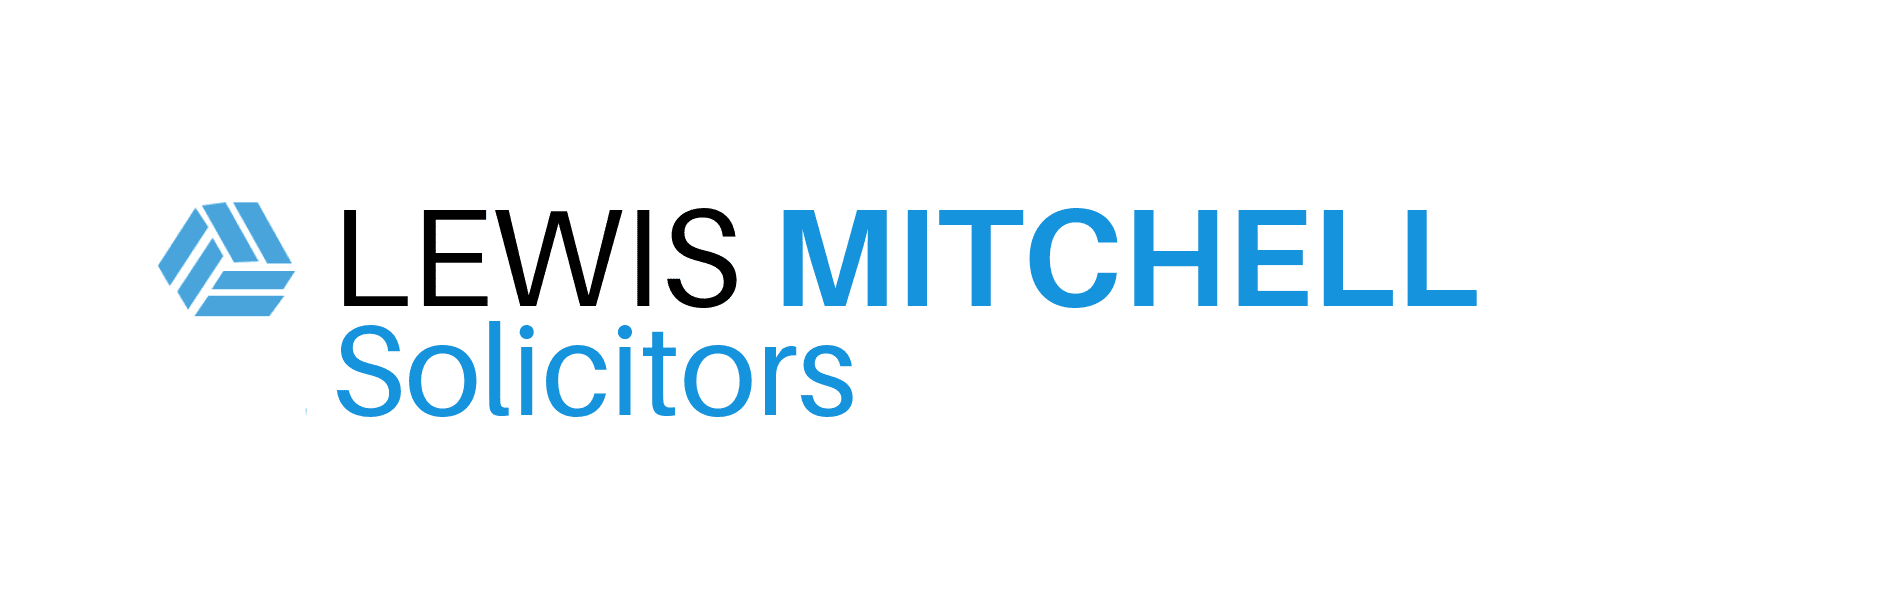 Lewis Mitchell Solicitors Clitheroe